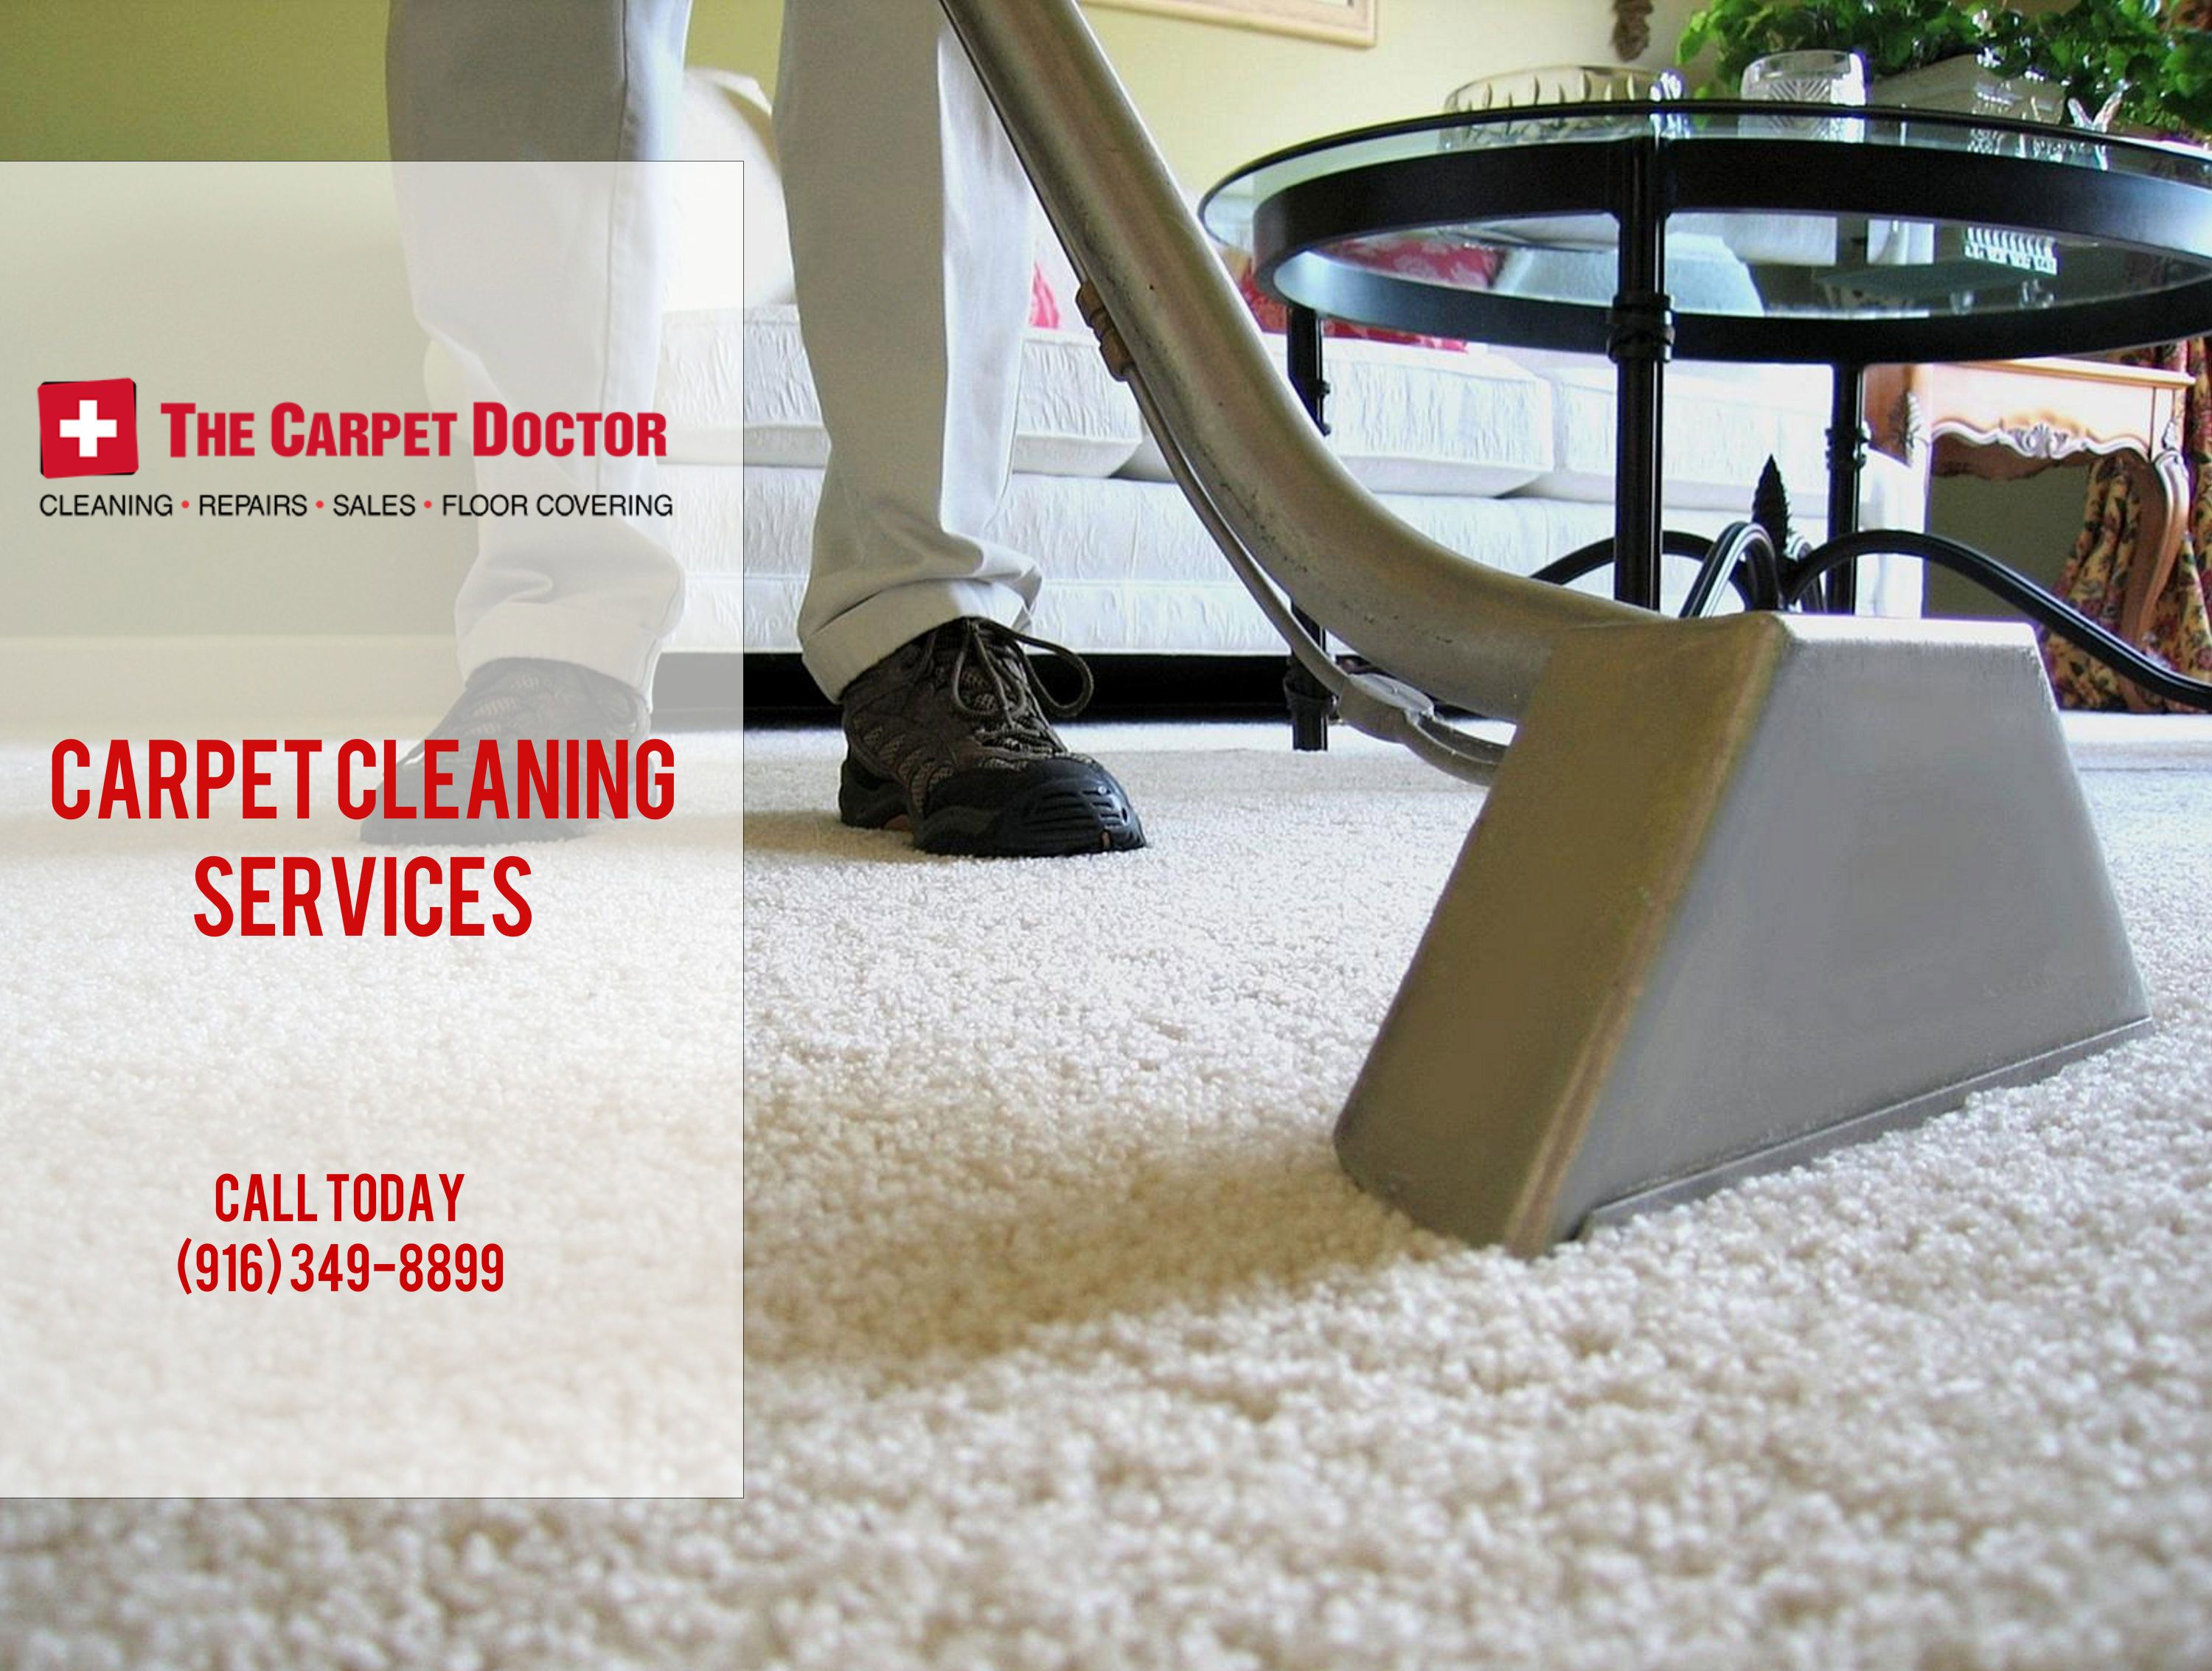 Carpet Cleaning Services TheCarpetDoctor Call Today